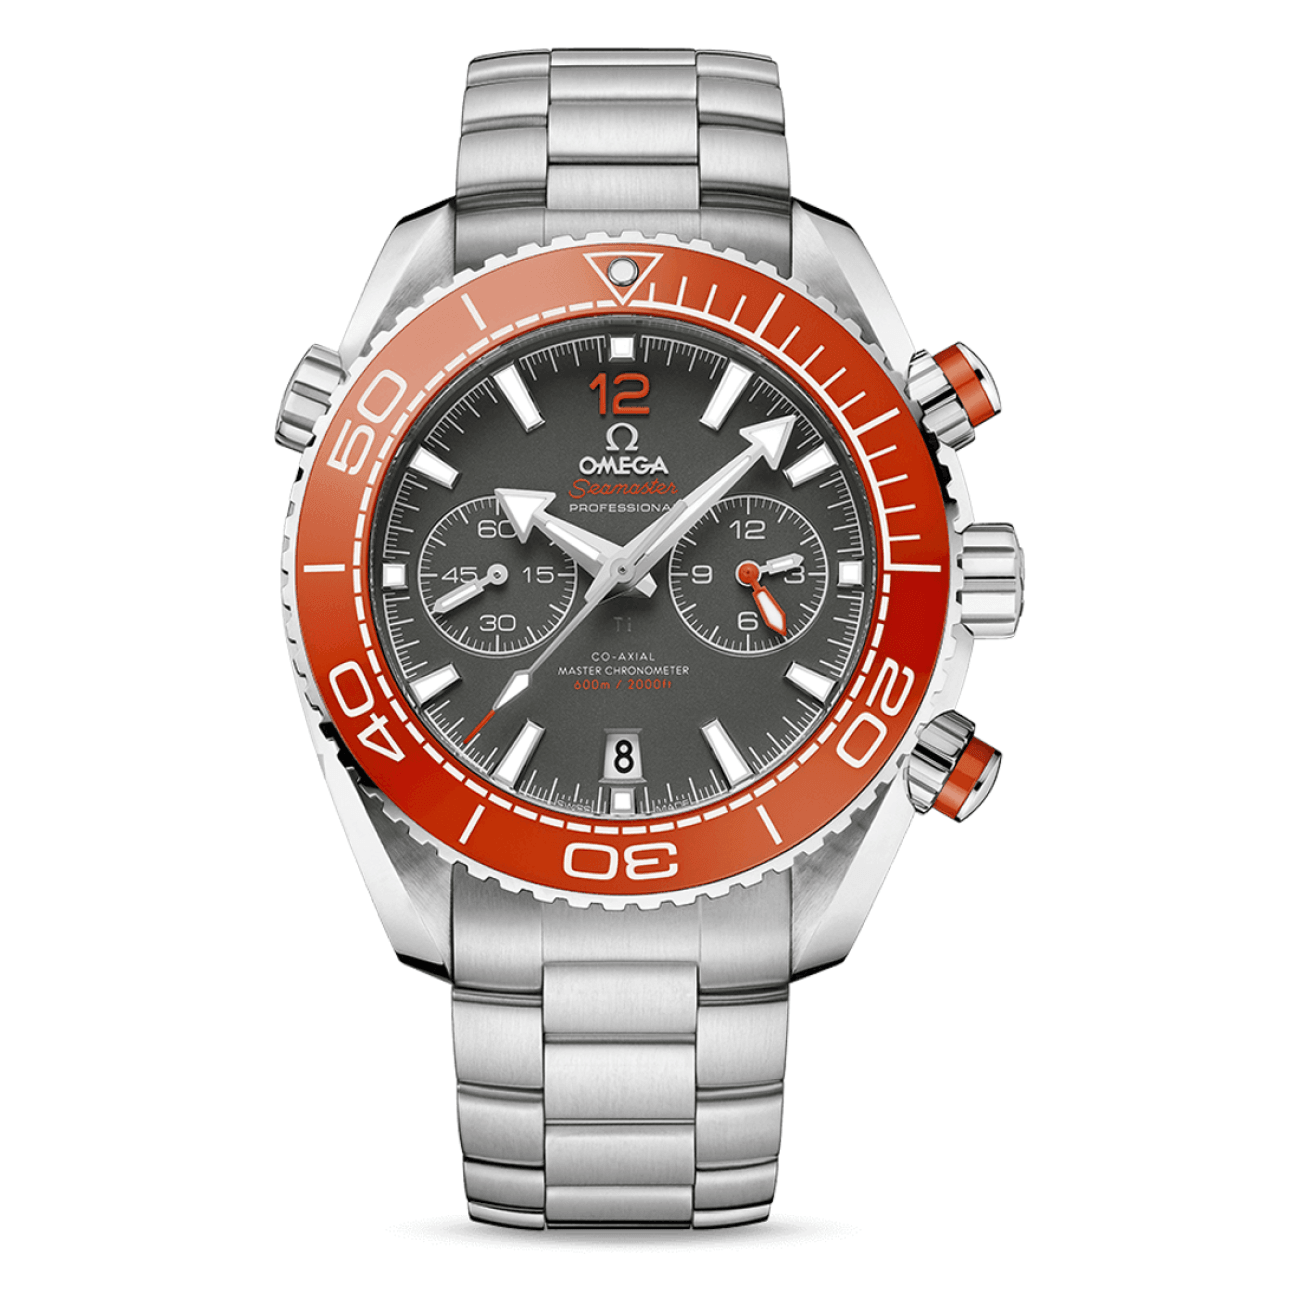 Omega Watches - PLANET Seamaster OCEAN 600M OMEGA CO‑AXIAL MASTER CHRONOMETER CHRONOGRAPH 45.5 MM | Manfredi Jewels